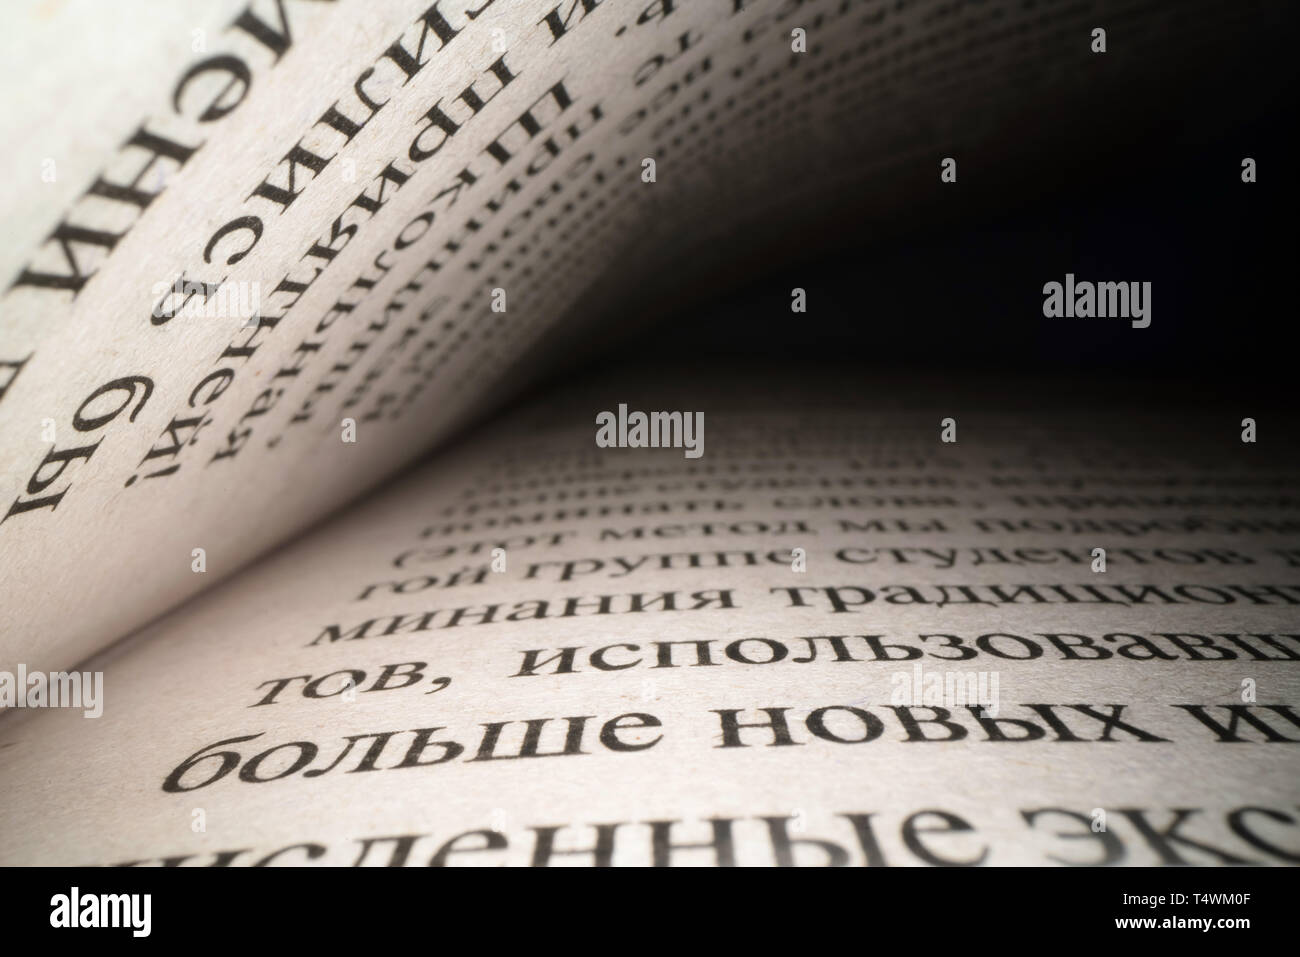 Inside the book concept. Cyrillic letters and words on an open book with black dramatic background. Education, knowledge concept, russian letters - Stock Image